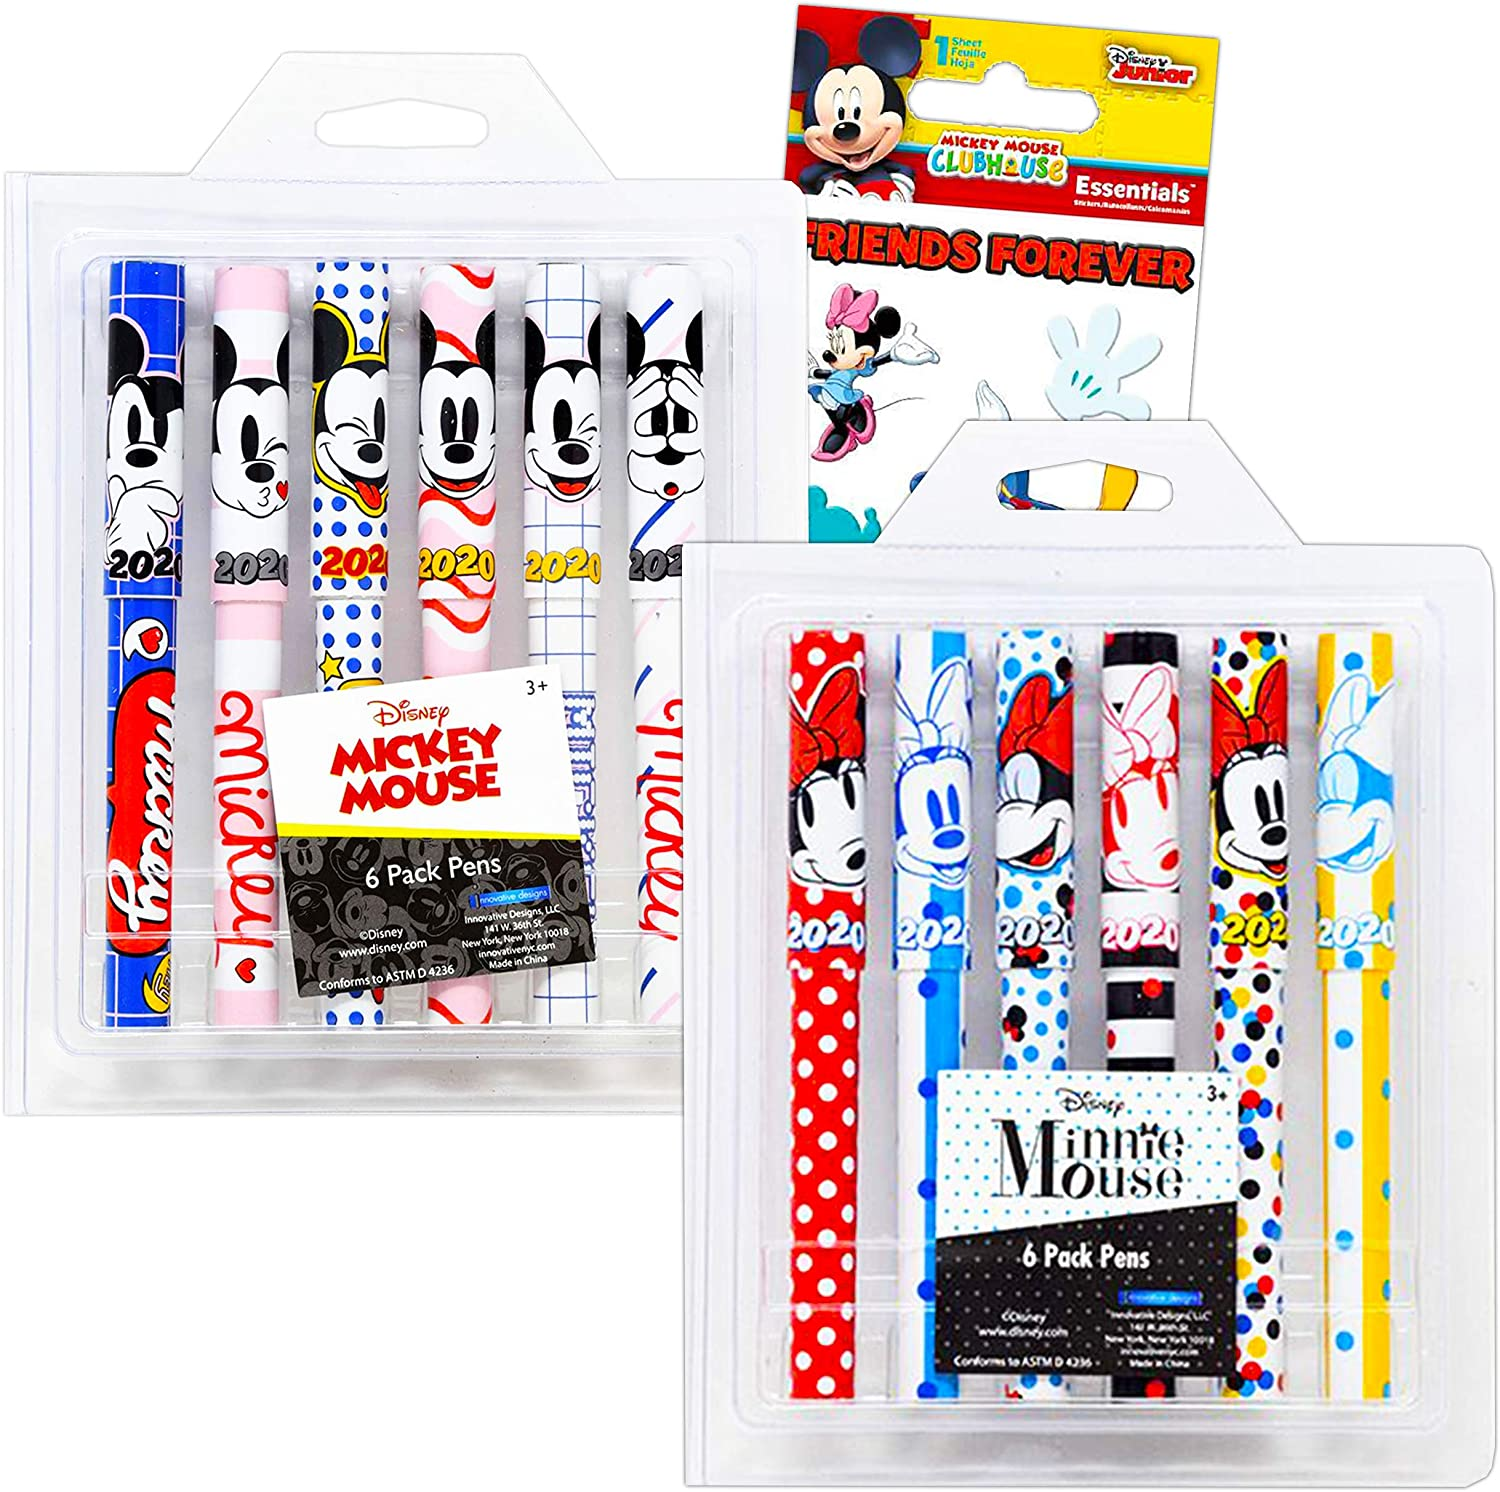 Disney Mickey and Minnie Stationary Set Minnie Mickey Mouse Pens for Adults Kids - 12 Pack Mickey Mouse Pens for Women Men with Mickey Mouse Stickers (Mickey Mouse Minnie Mouse Office Supplies)